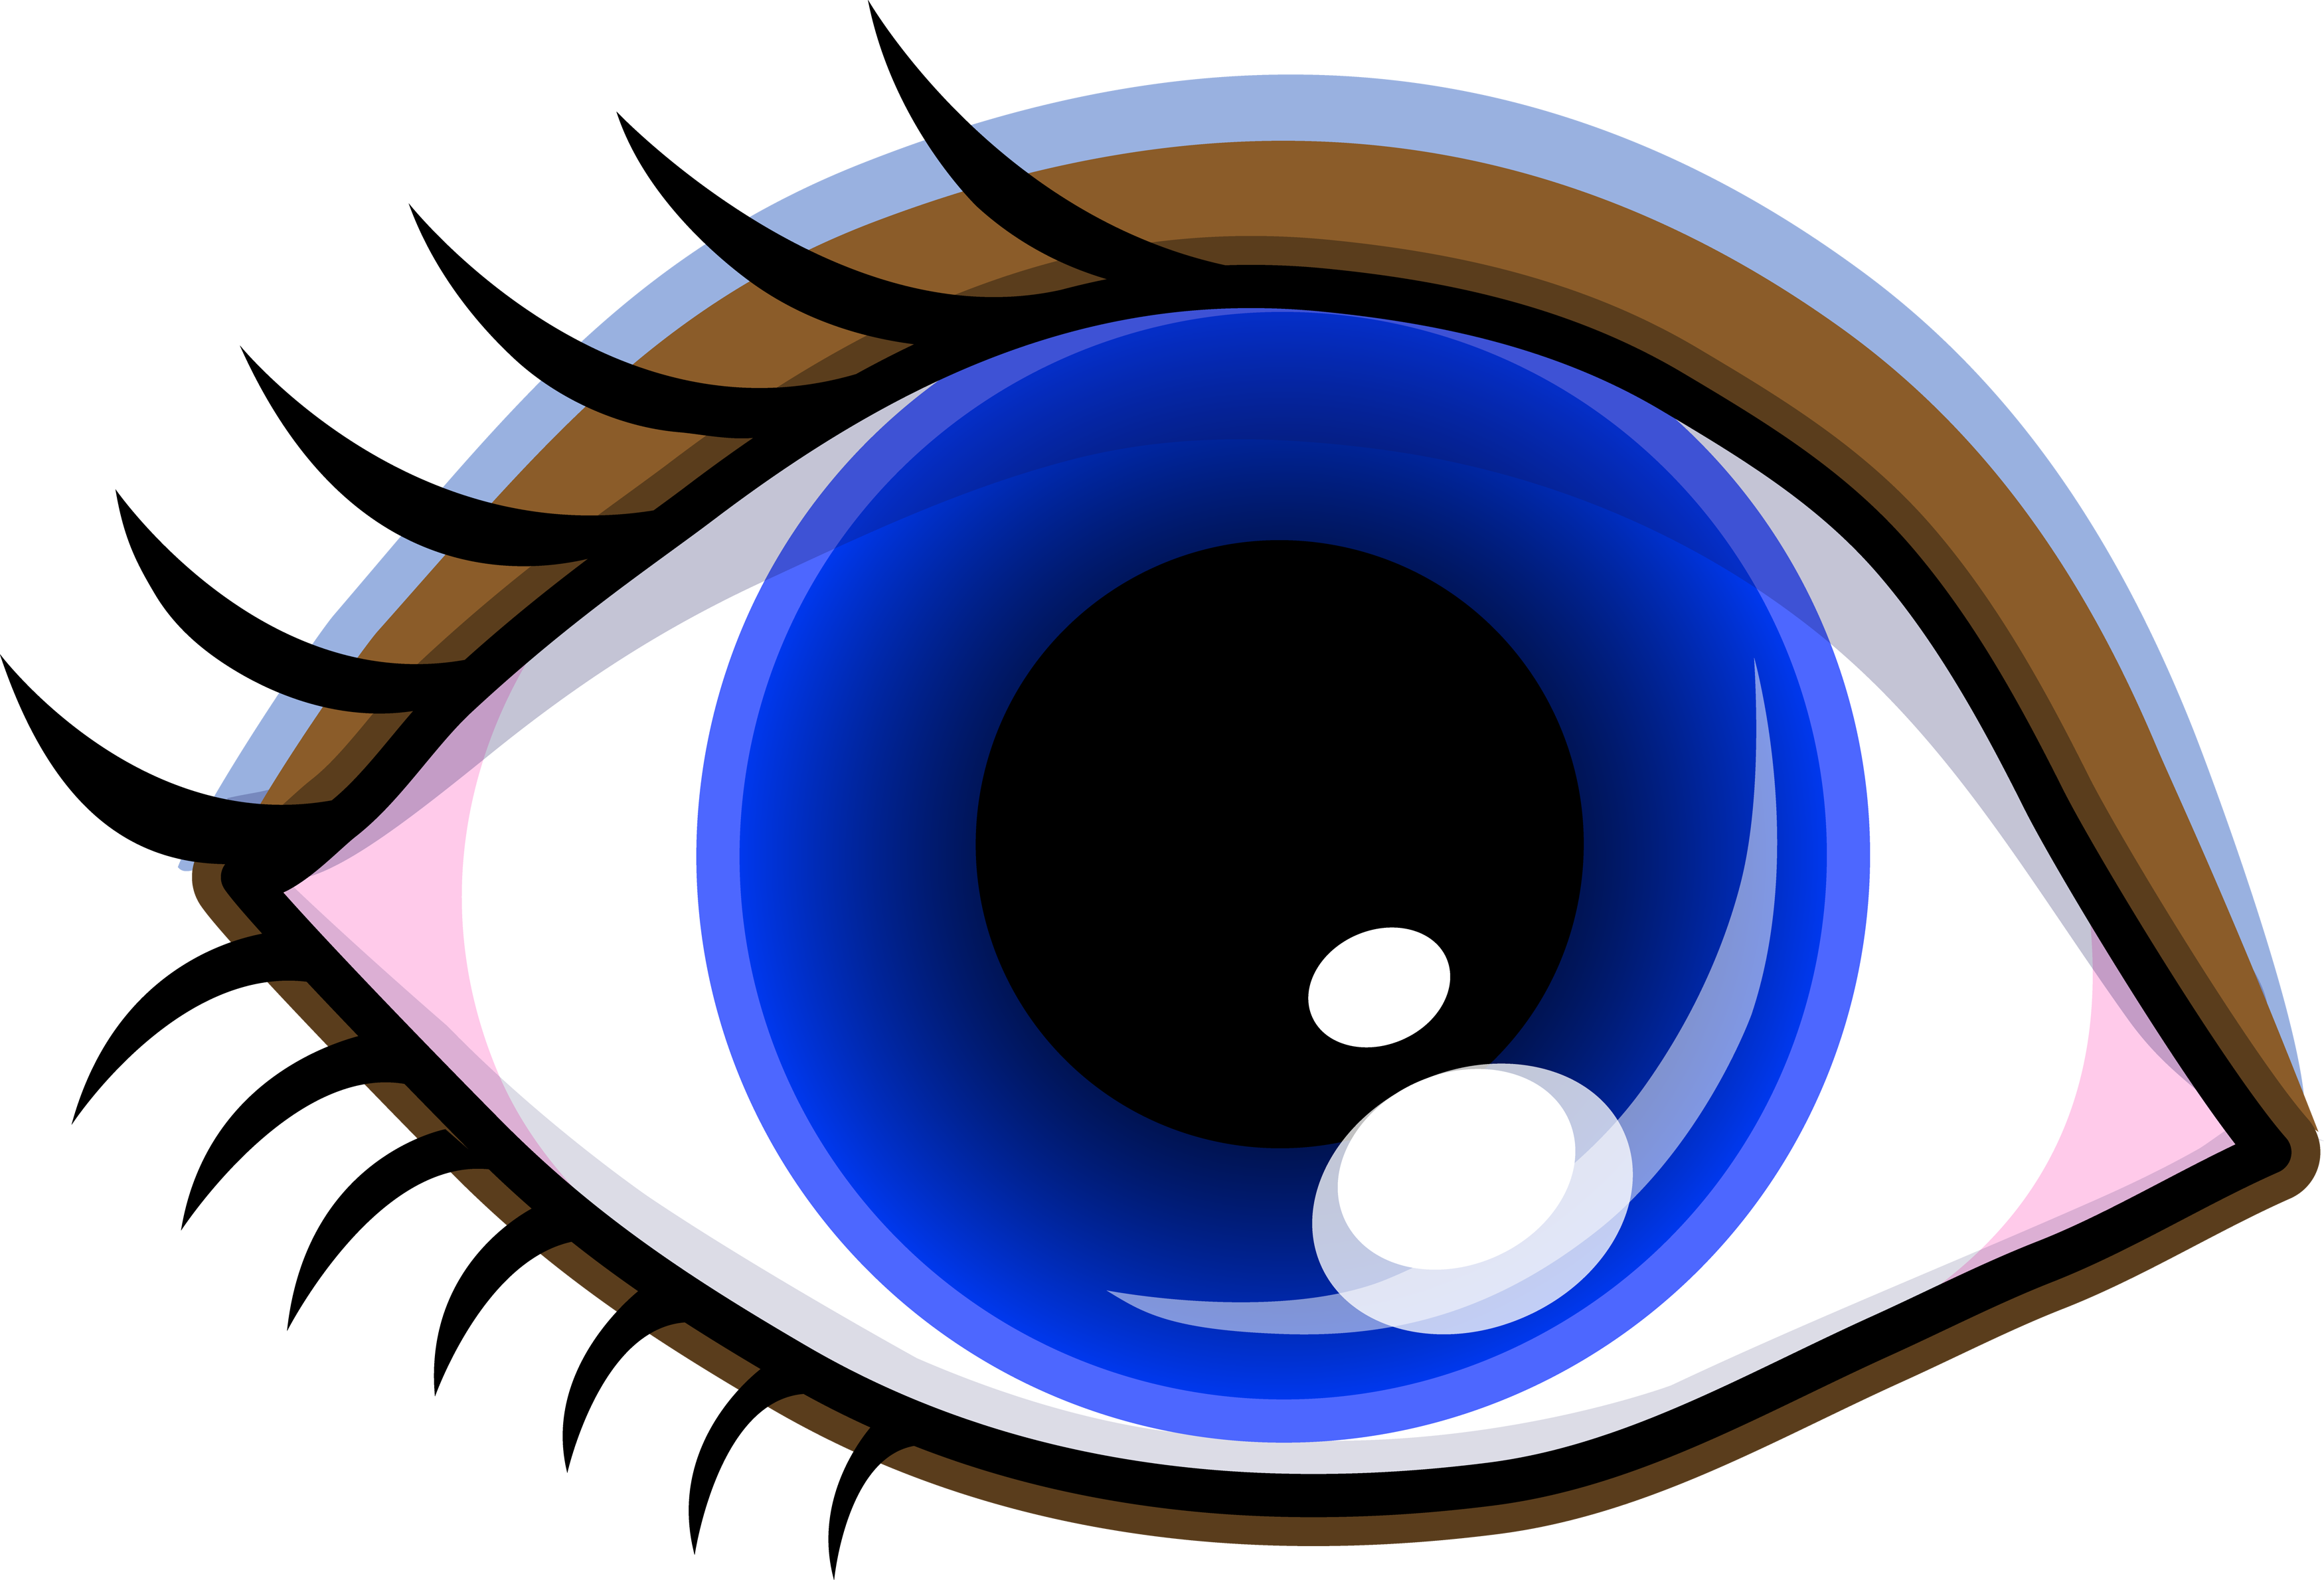 Free Eye Cartoon Images, Download Free Clip Art, Free Clip.